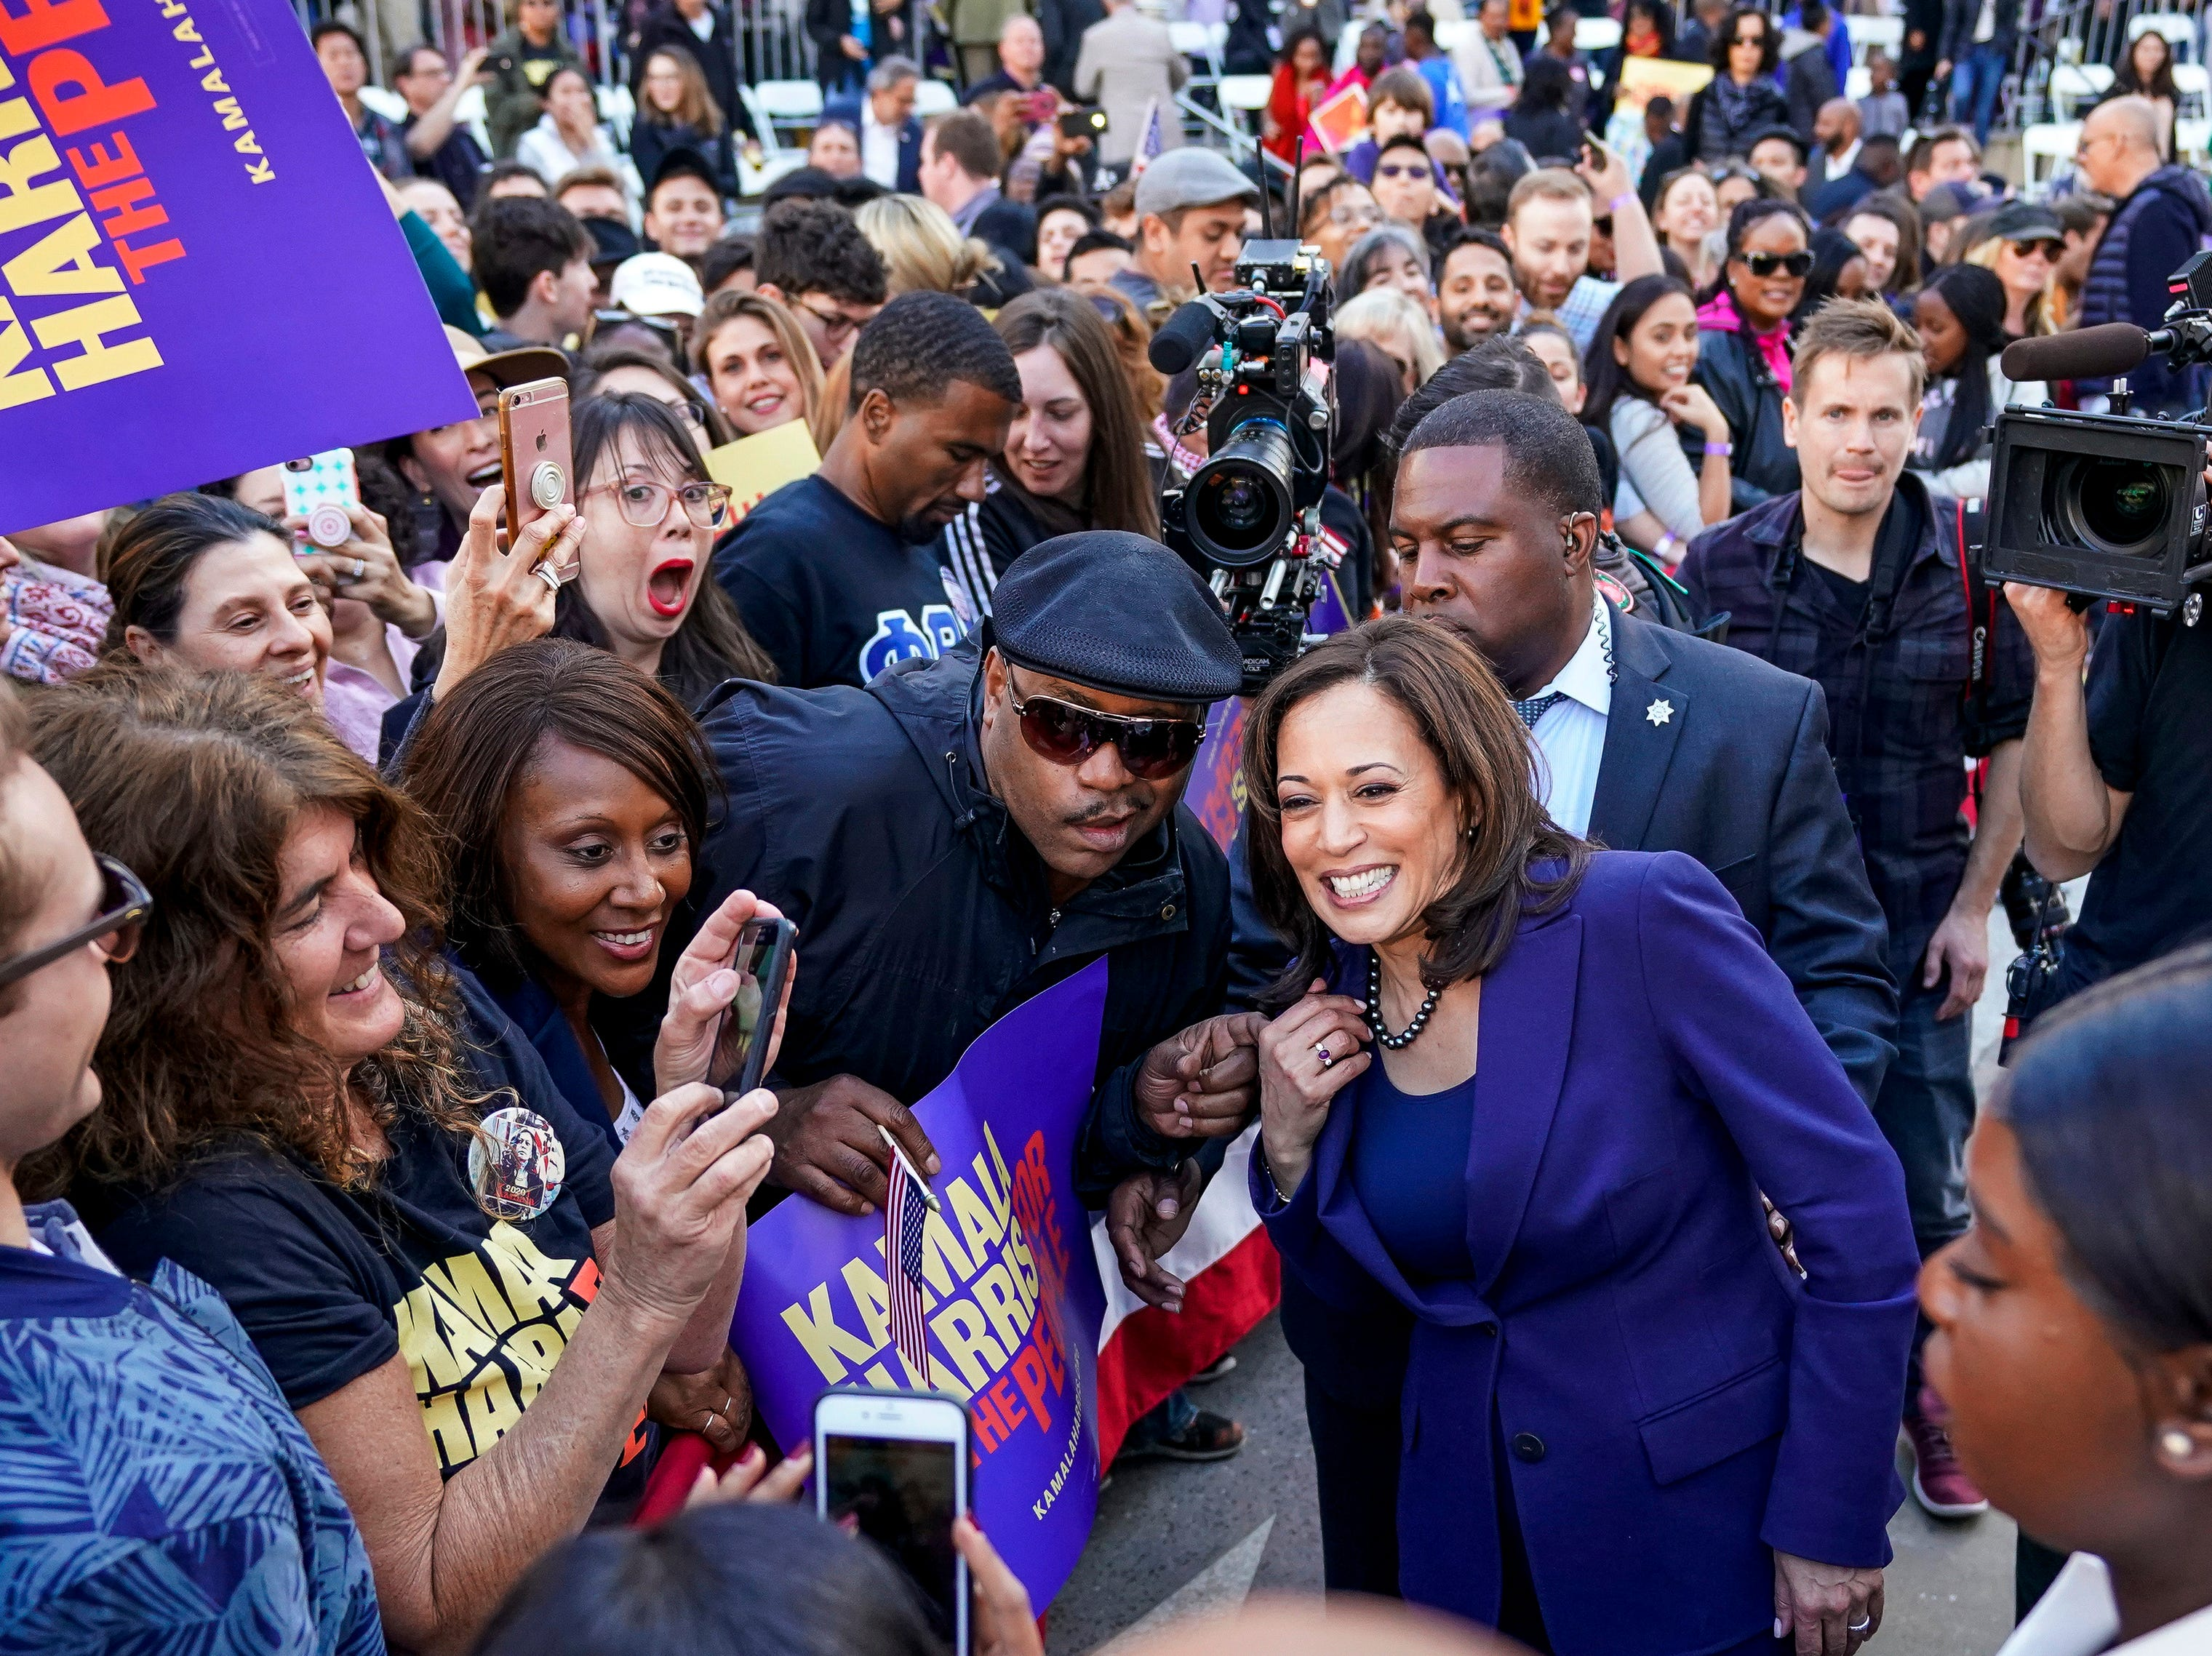 Supporters take photos with U.S. Sen. Kamala Harris, D-Calif. launched her presidential campaign on Jan. 27, 2019.